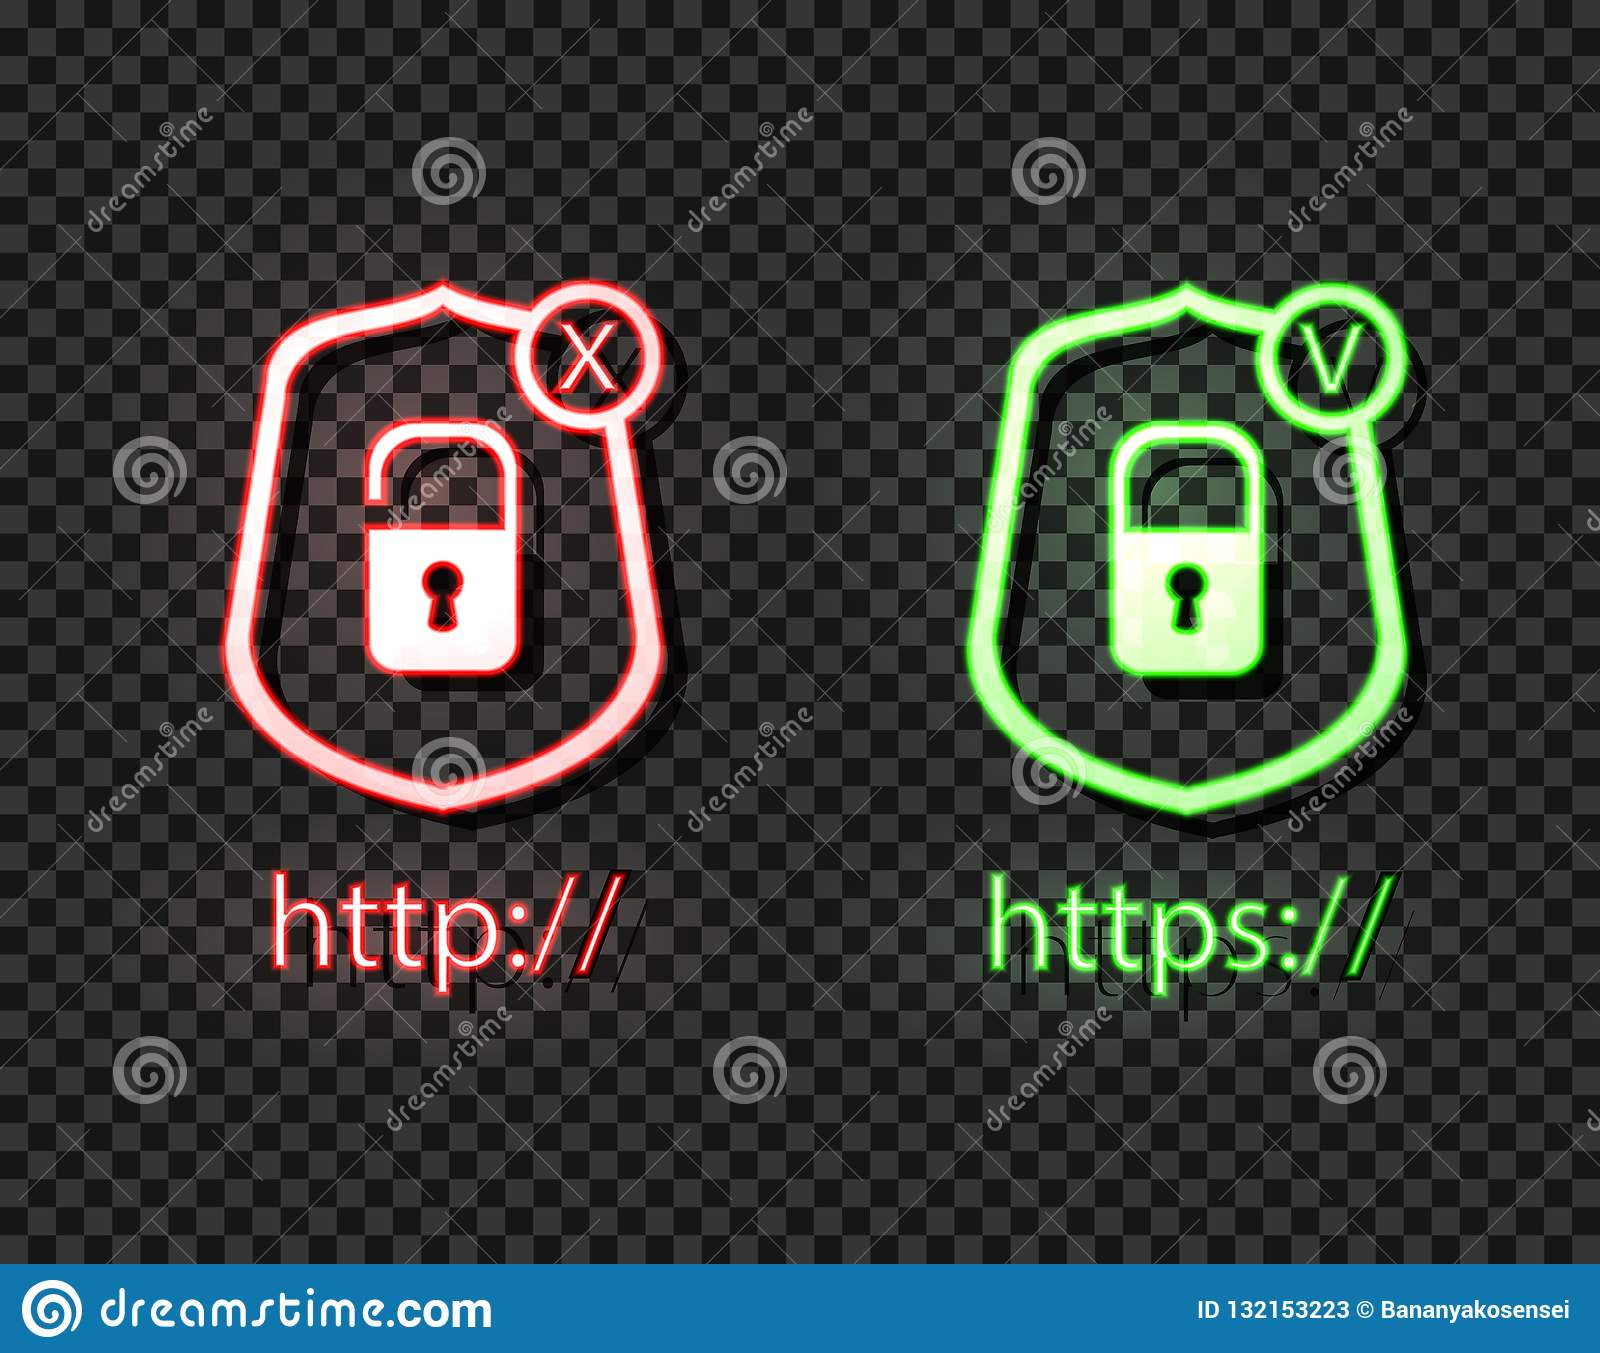 Vector Neon Icons: http and https Protocols with Lock, Green and Red Bright Symbols, Check and Cross.